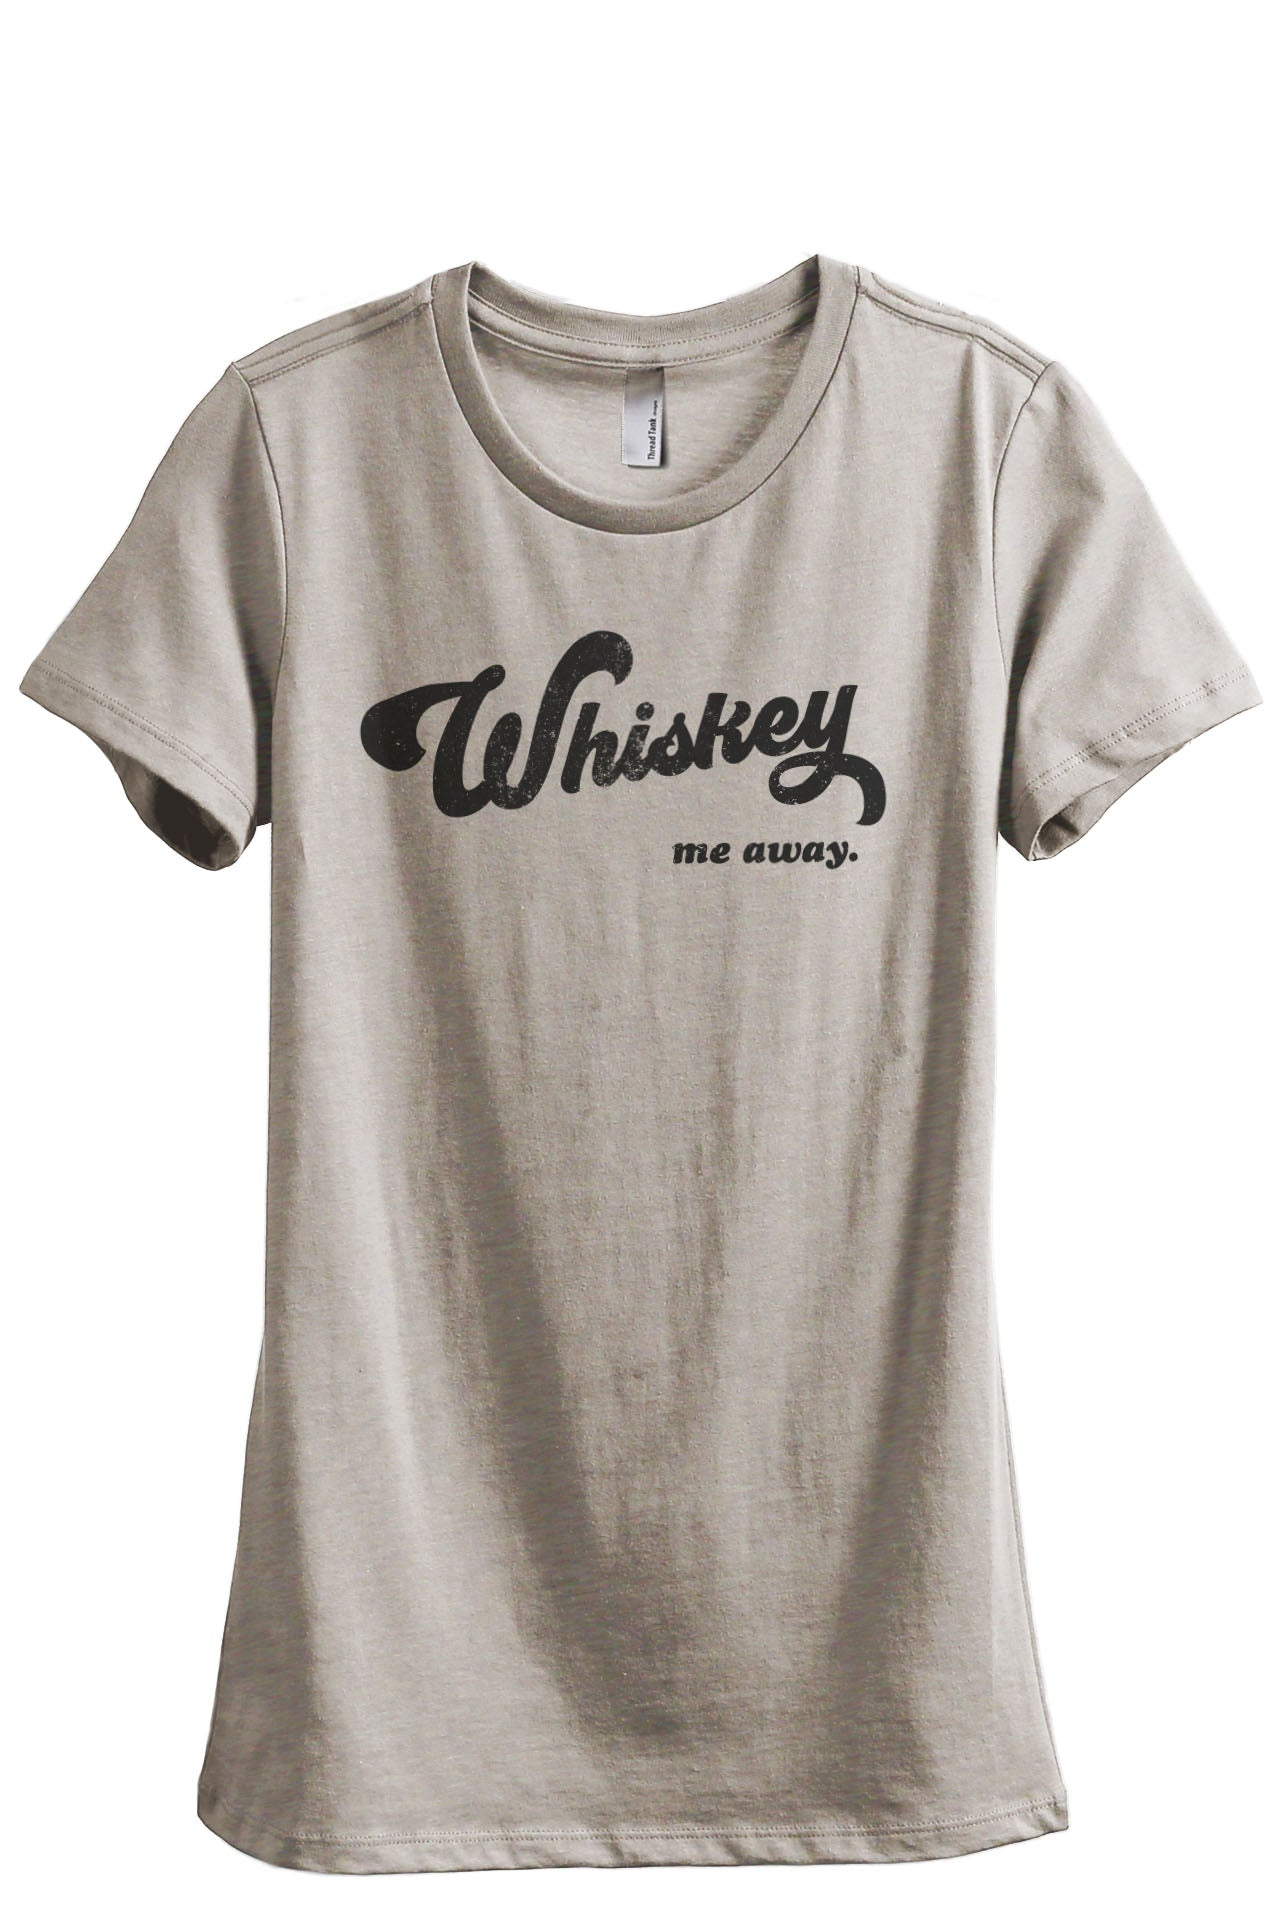 Whiskey Me Away Women's Relaxed Crewneck T-Shirt Top Tee Heather Tan